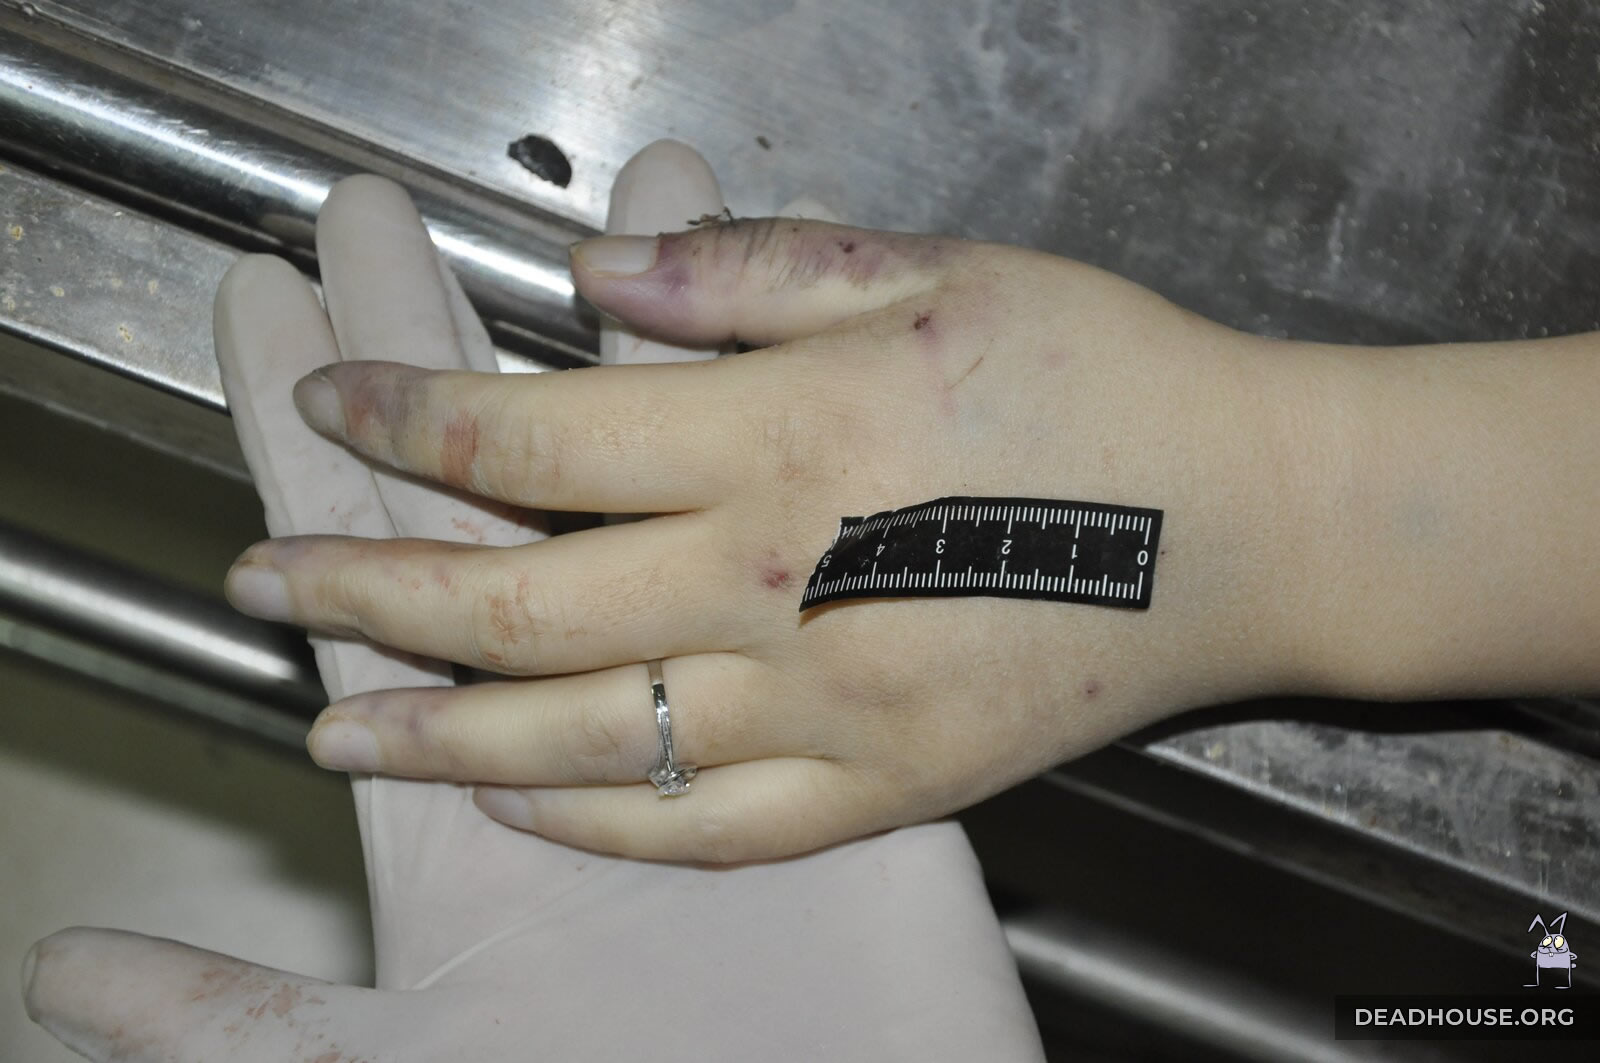 Ring on the hand and characteristic injuries of the hands